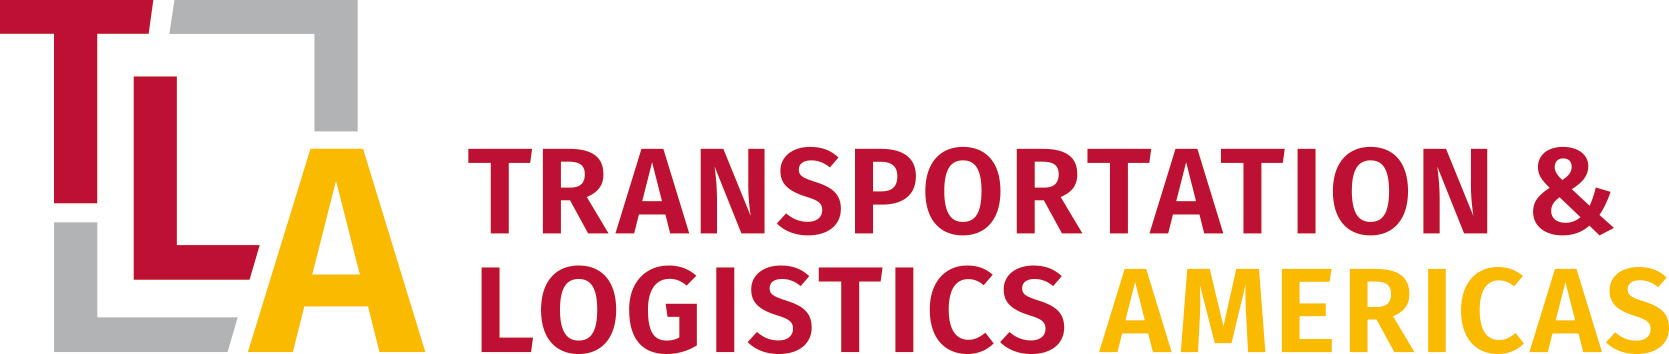 Transportation & Logistics Americas